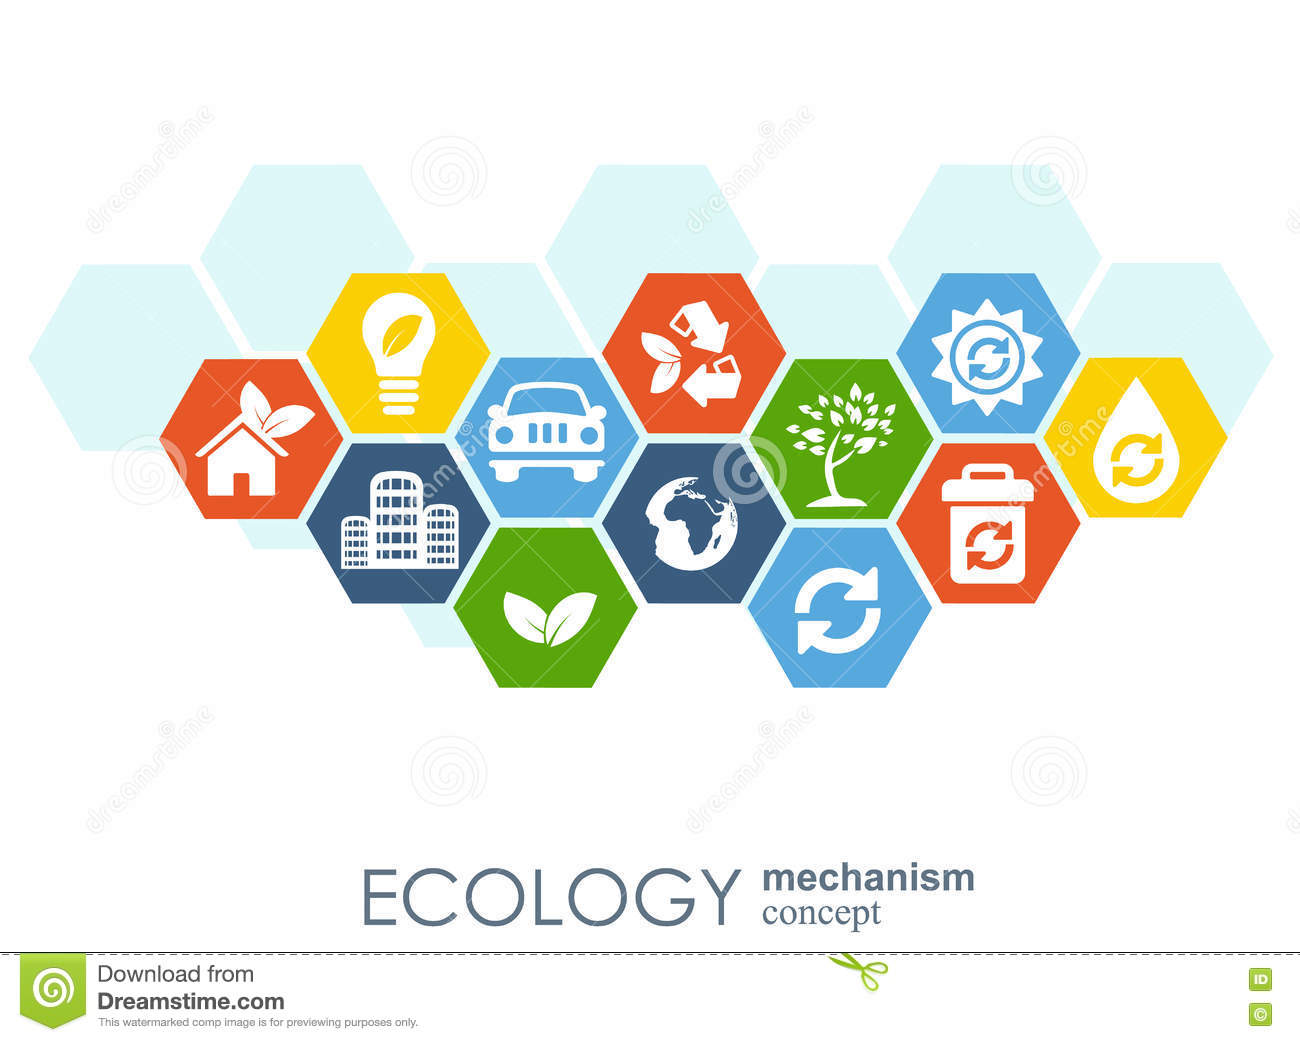 "eco friendly environment ""environmentally friendly, environment-friendly, eco-friendly, nature-friendly, and green are marketing claims referring to goods and services, laws, guidelines and policies that inflict reduced, minimal, or no harm at all, upon ecosystems or the environment""."